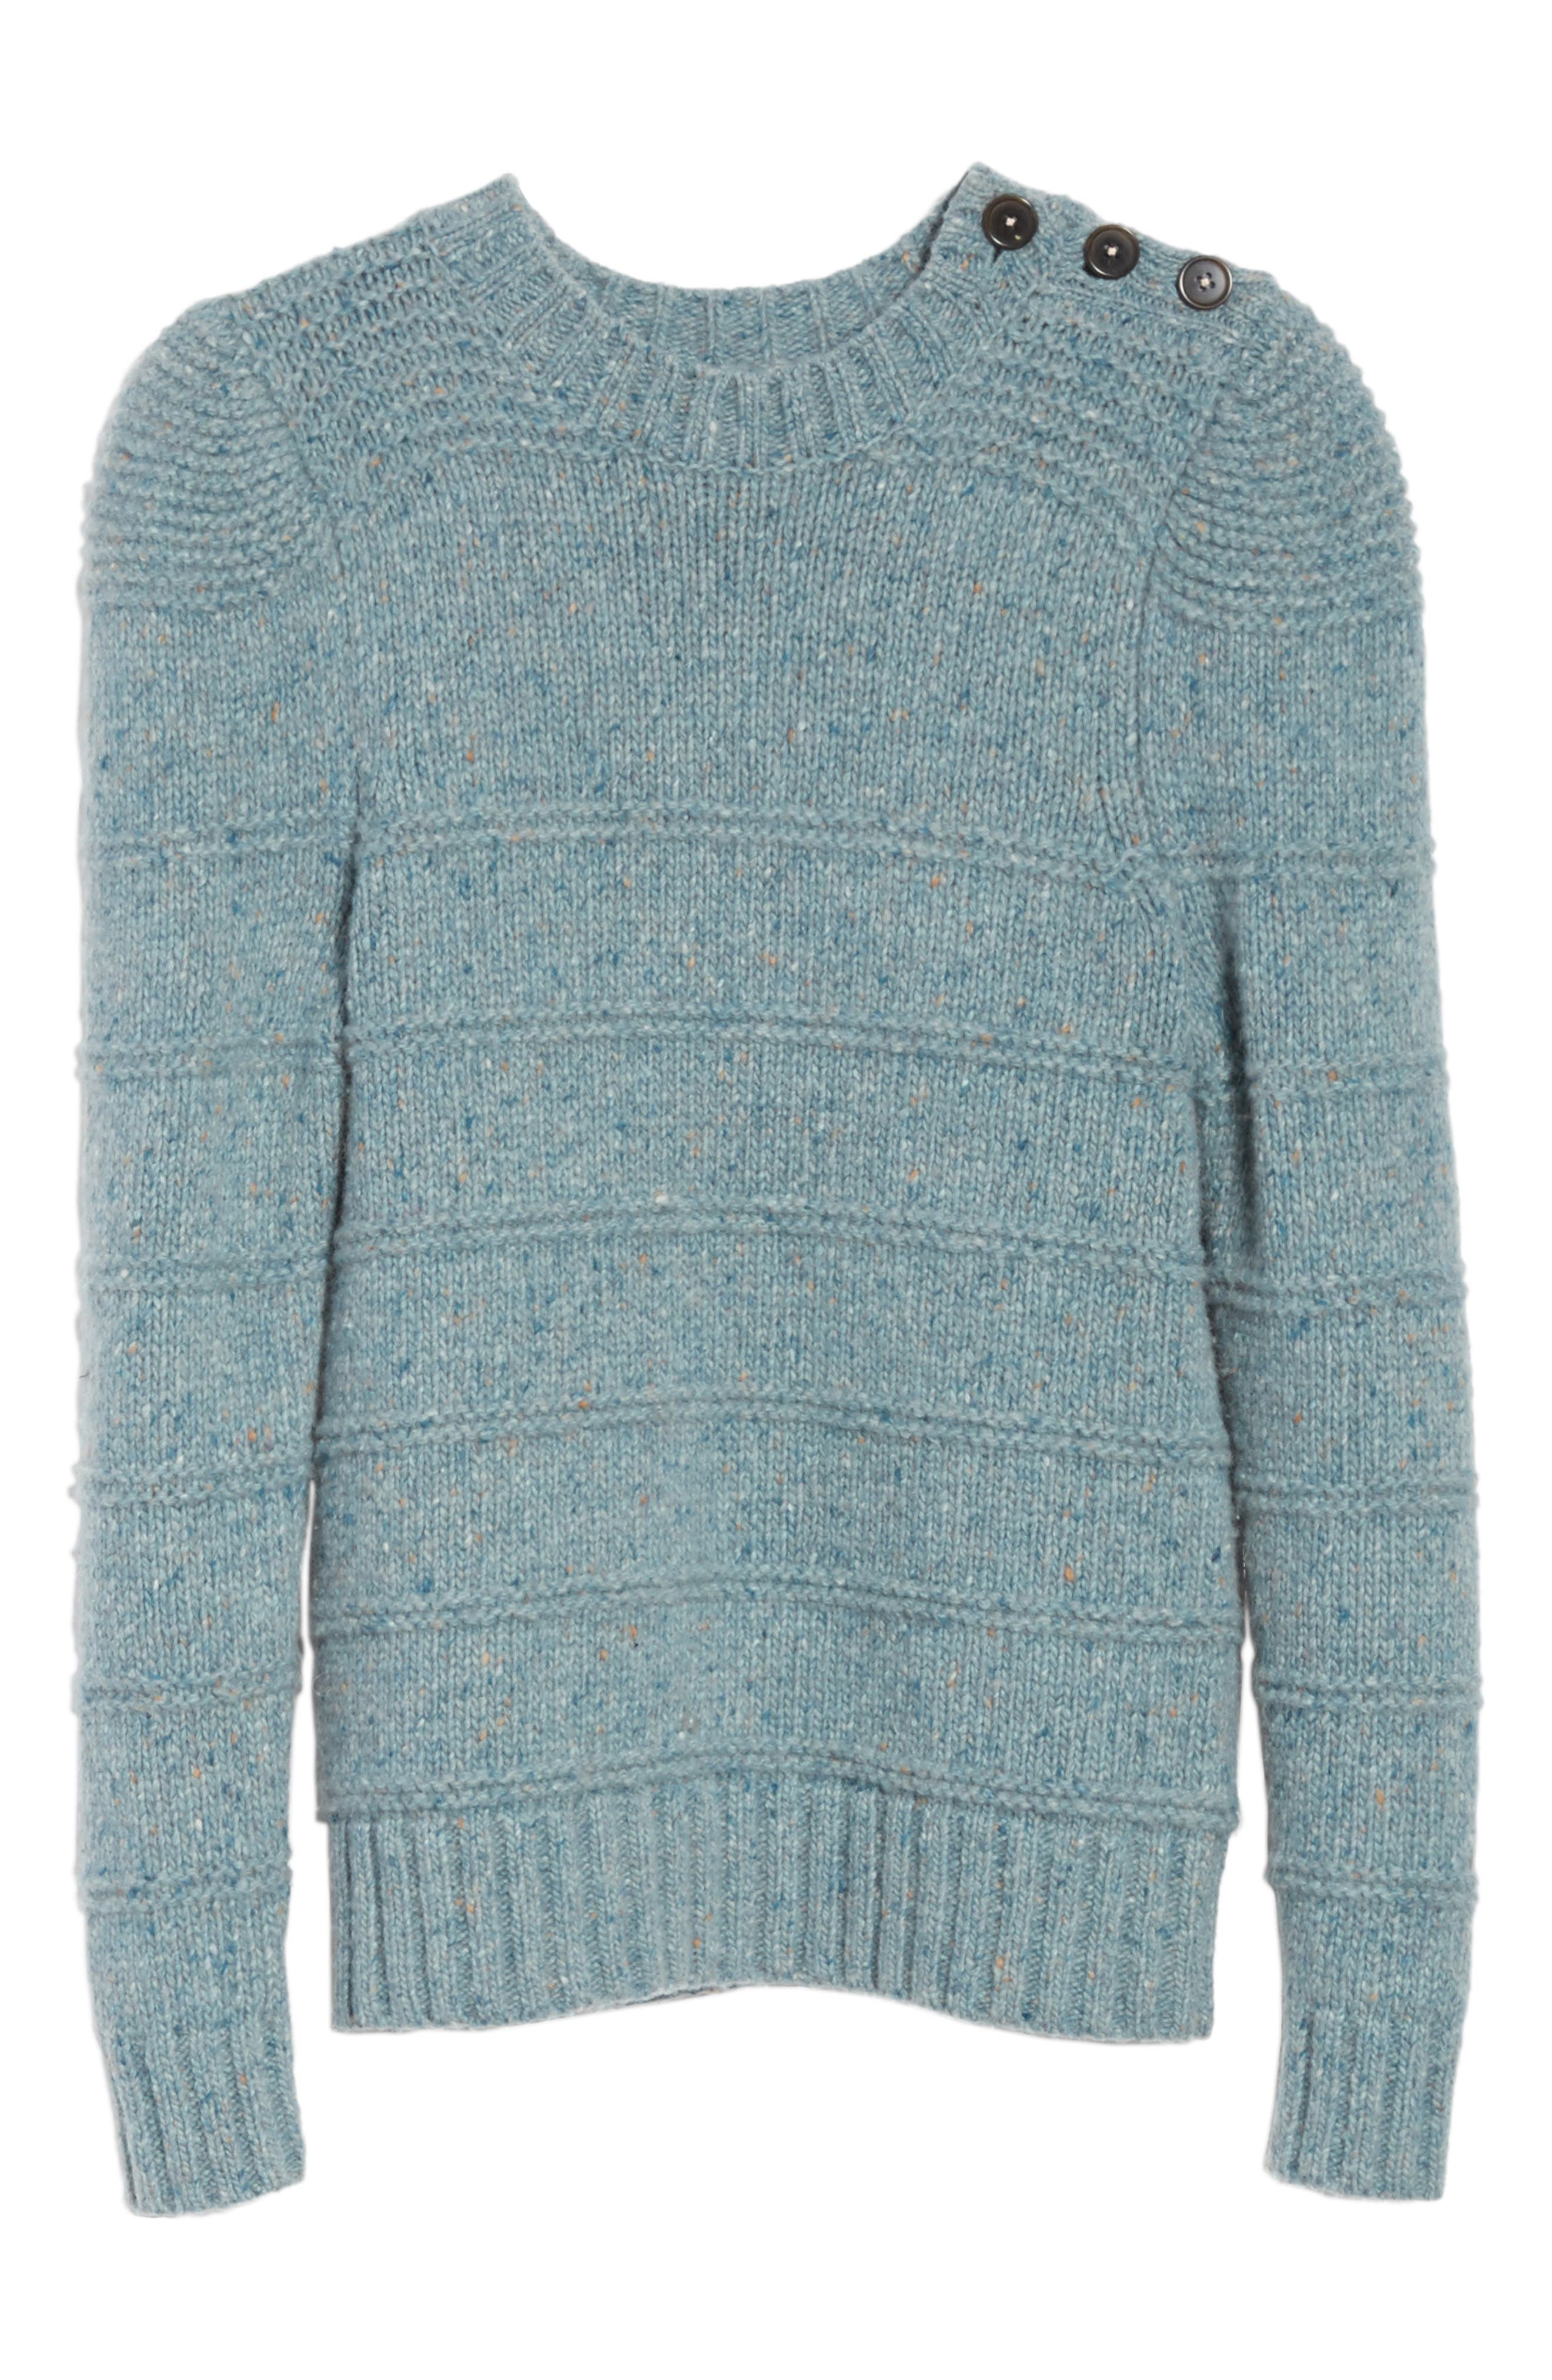 Donegal Tweed Pullover,                             Alternate thumbnail 6, color,